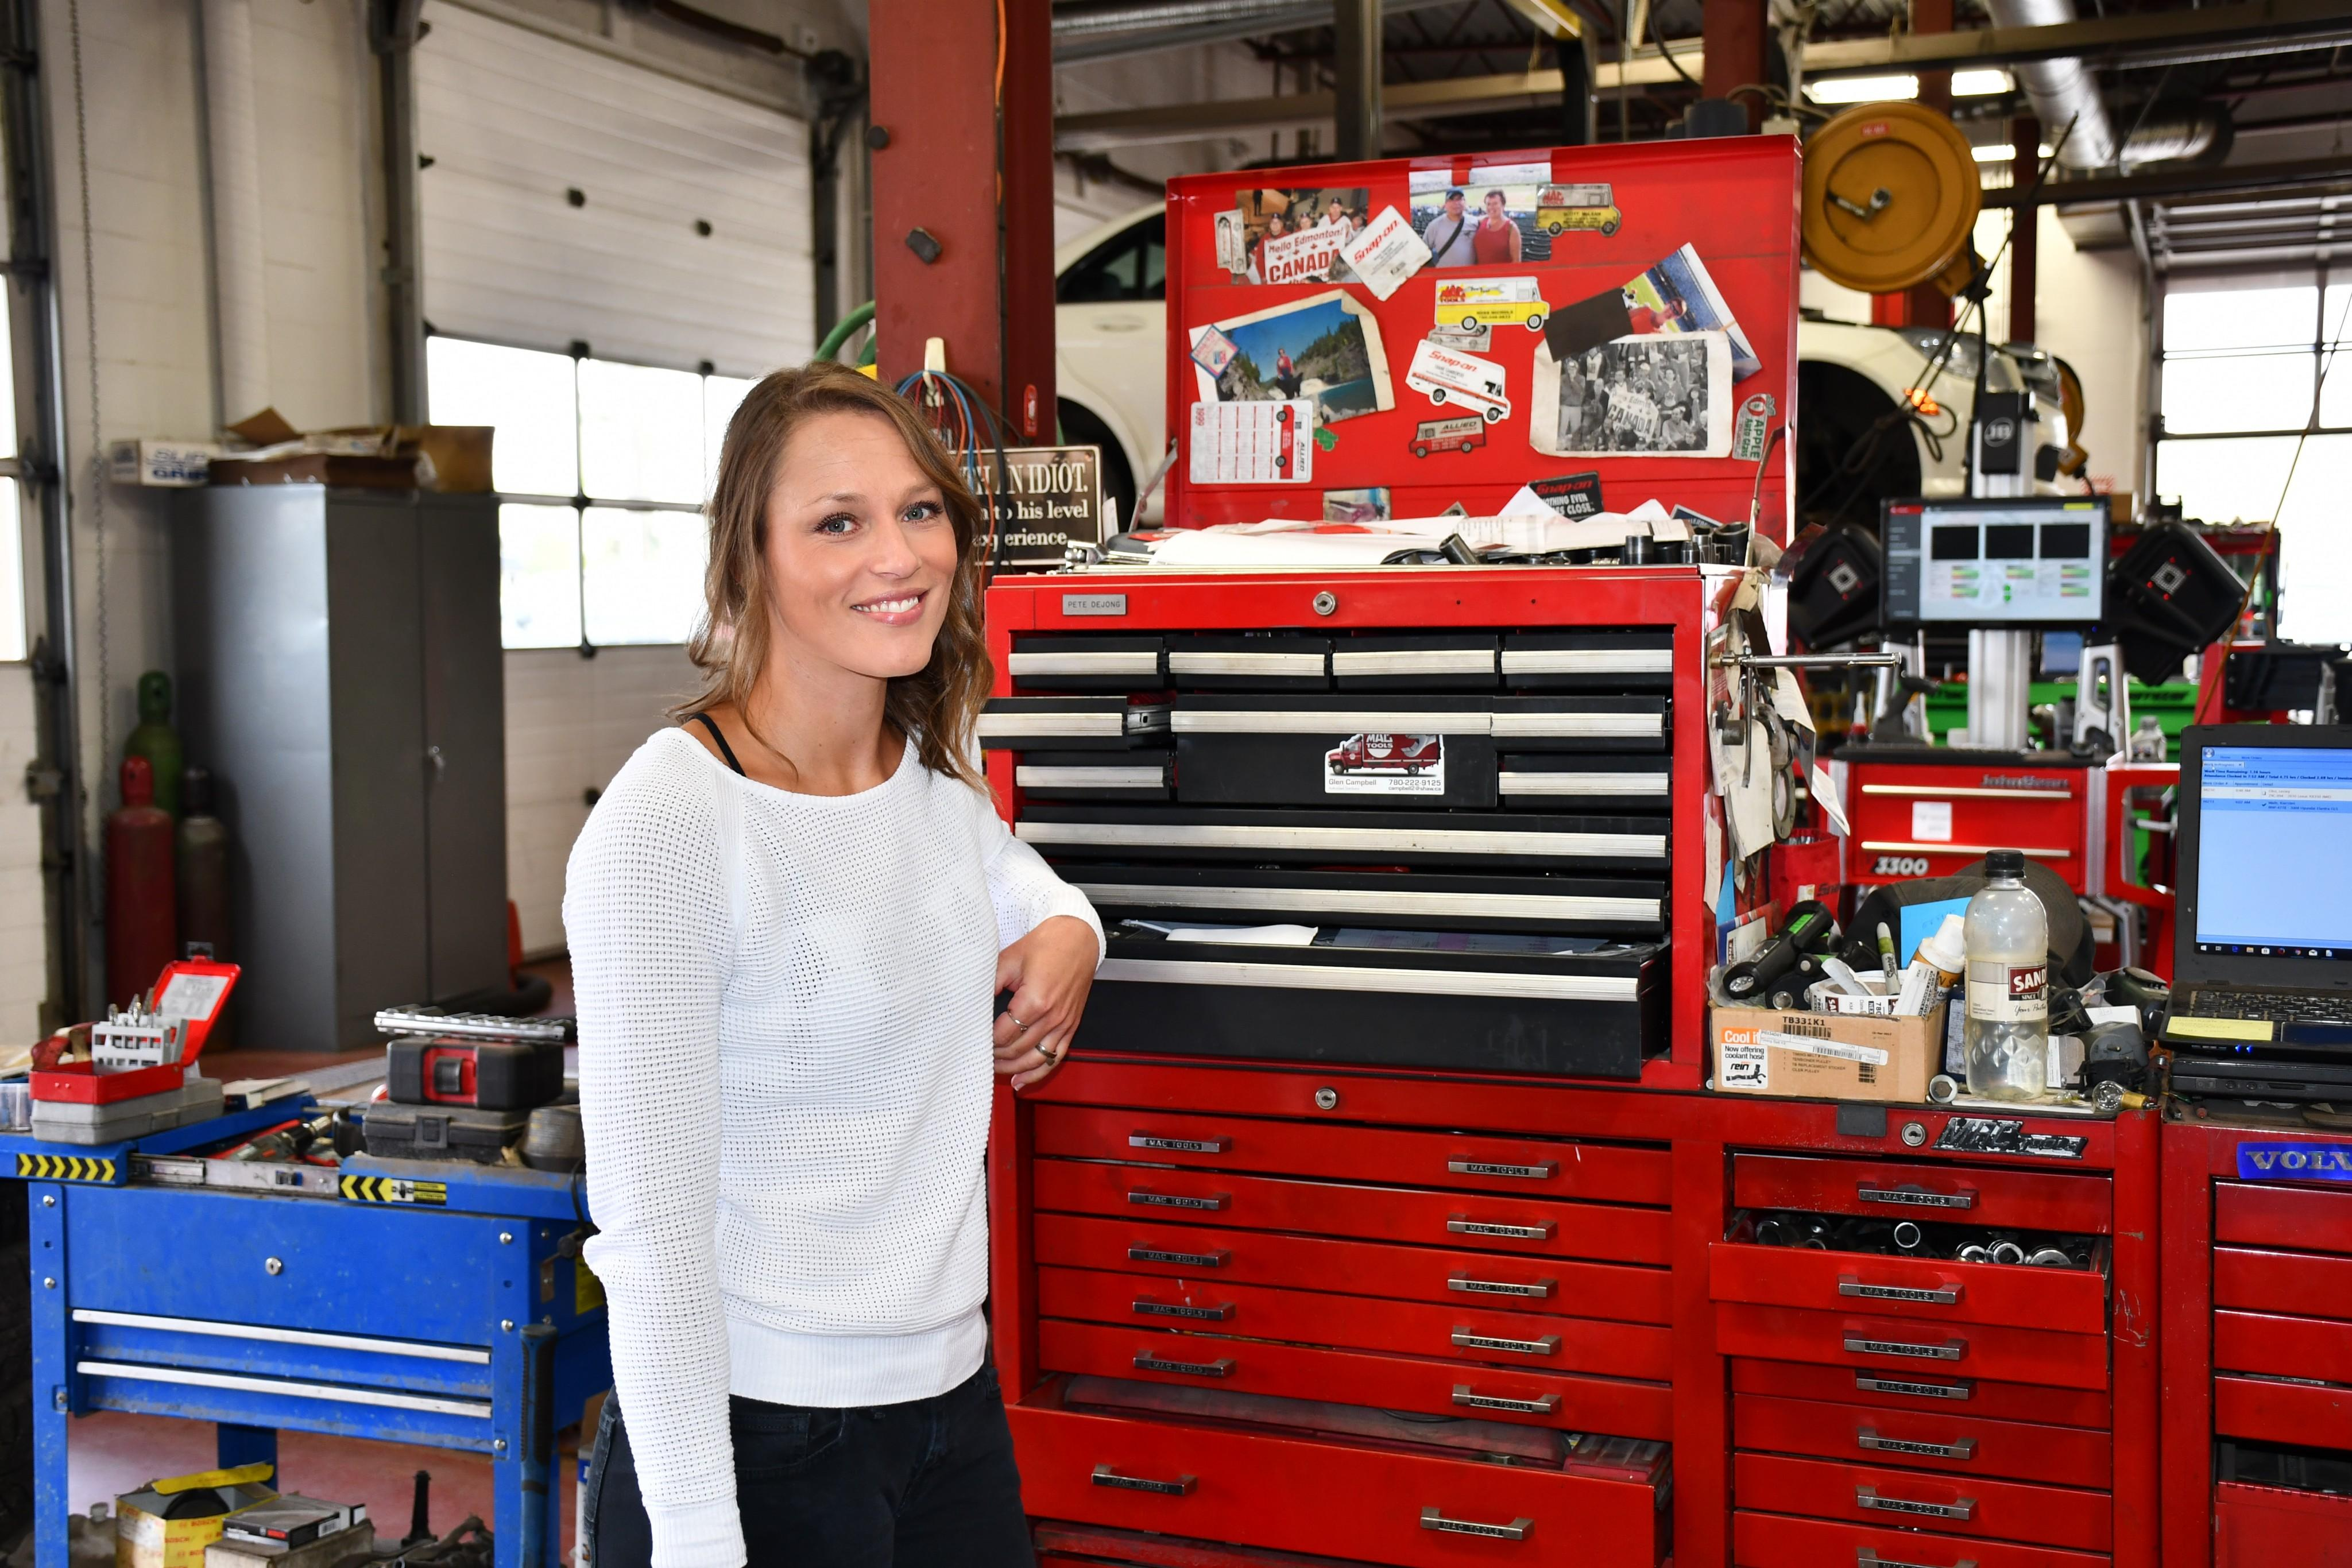 Hockey, baseball and string art keep Jen Jensen on the move